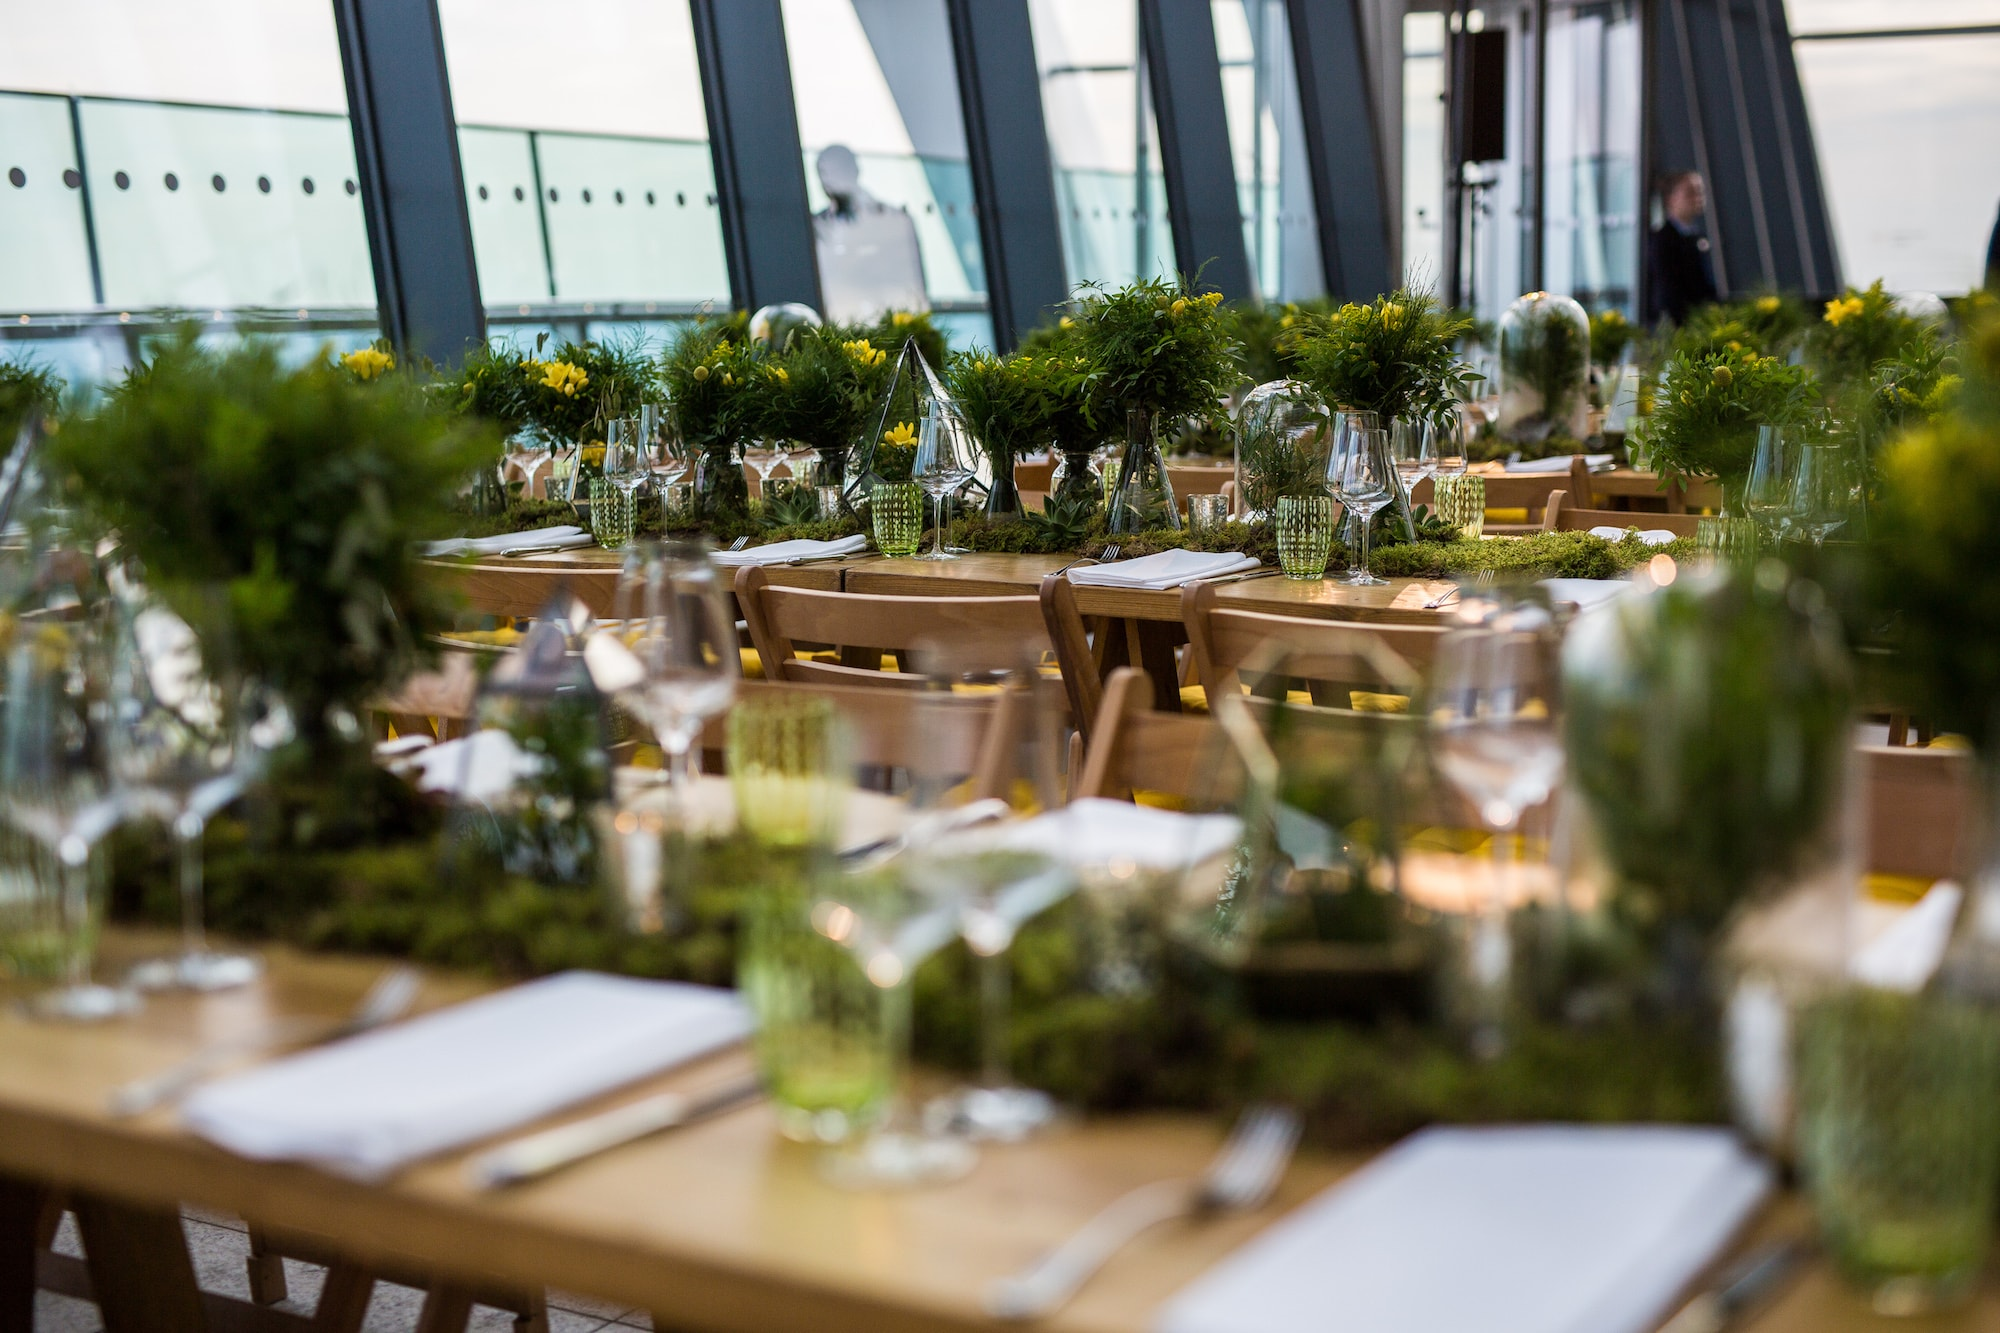 larry_walshe_floral_design_events_sky_garden